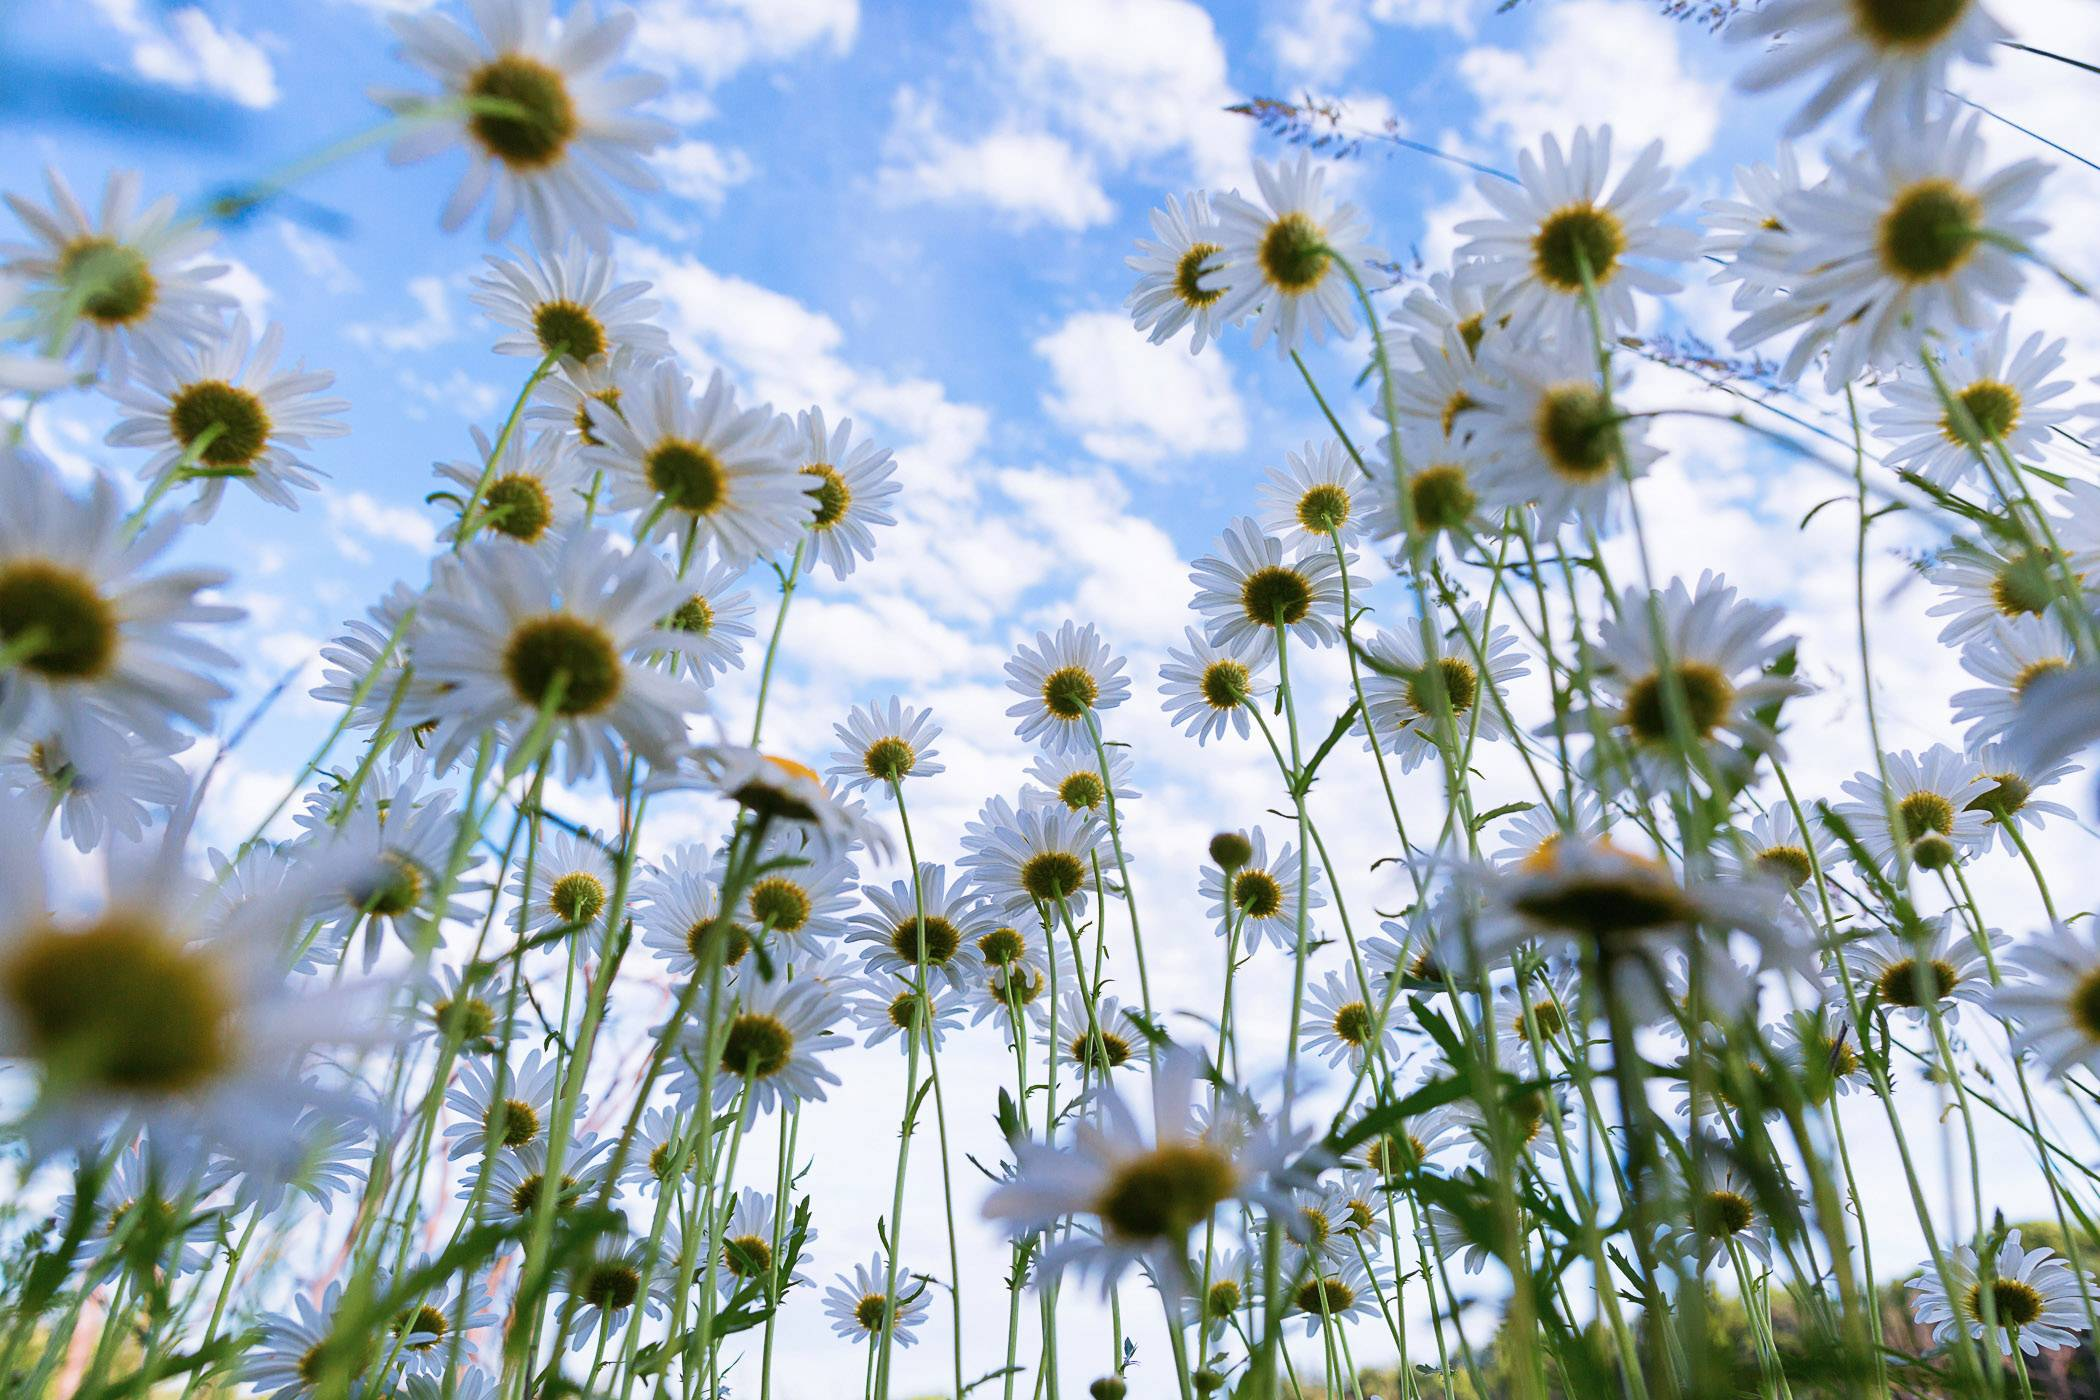 Wild daisies soak up the sun on June 12 along the Millennium Trail in Wauconda.